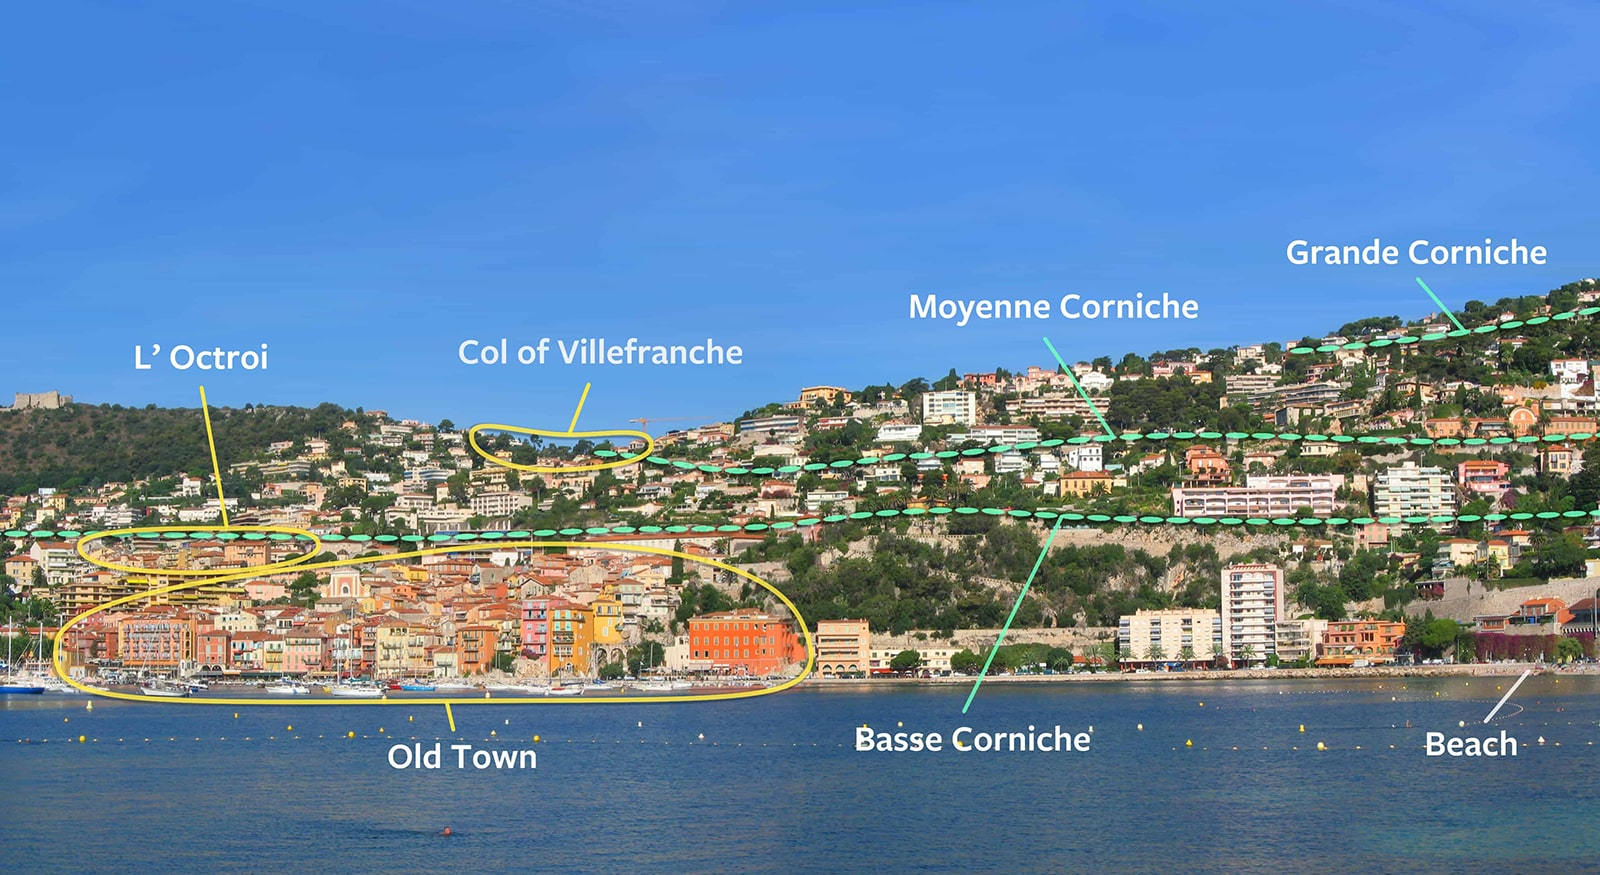 A view of the village of Villefranche and the hillside that rises above it with markings of where the old town, l'Octroi, Col of Villefranche, and the principal corniche roads.